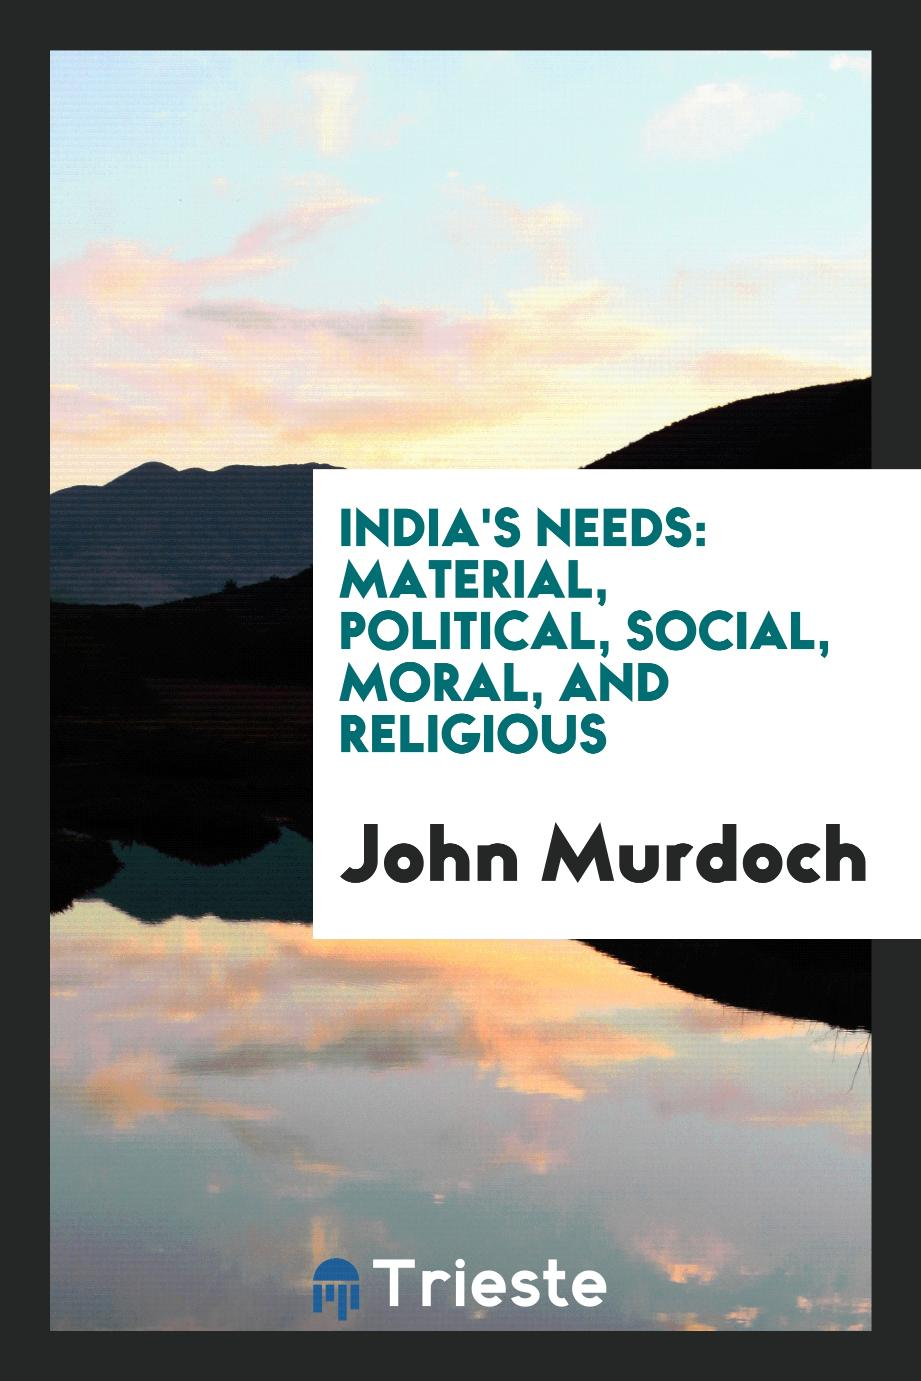 India's Needs: Material, Political, Social, Moral, and Religious